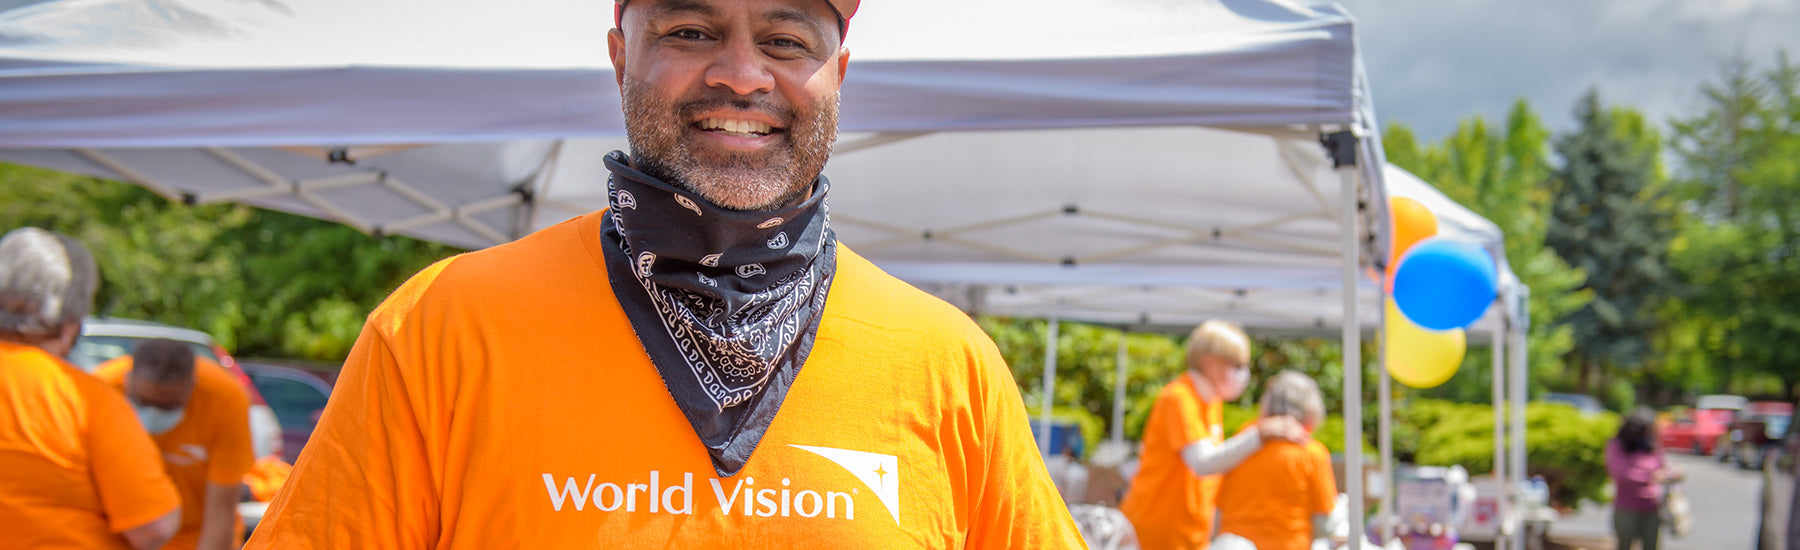 Nunbelievable Stories: How World Vision is Continuing its Humanitarian Mission in the Face of a Global Pandemic